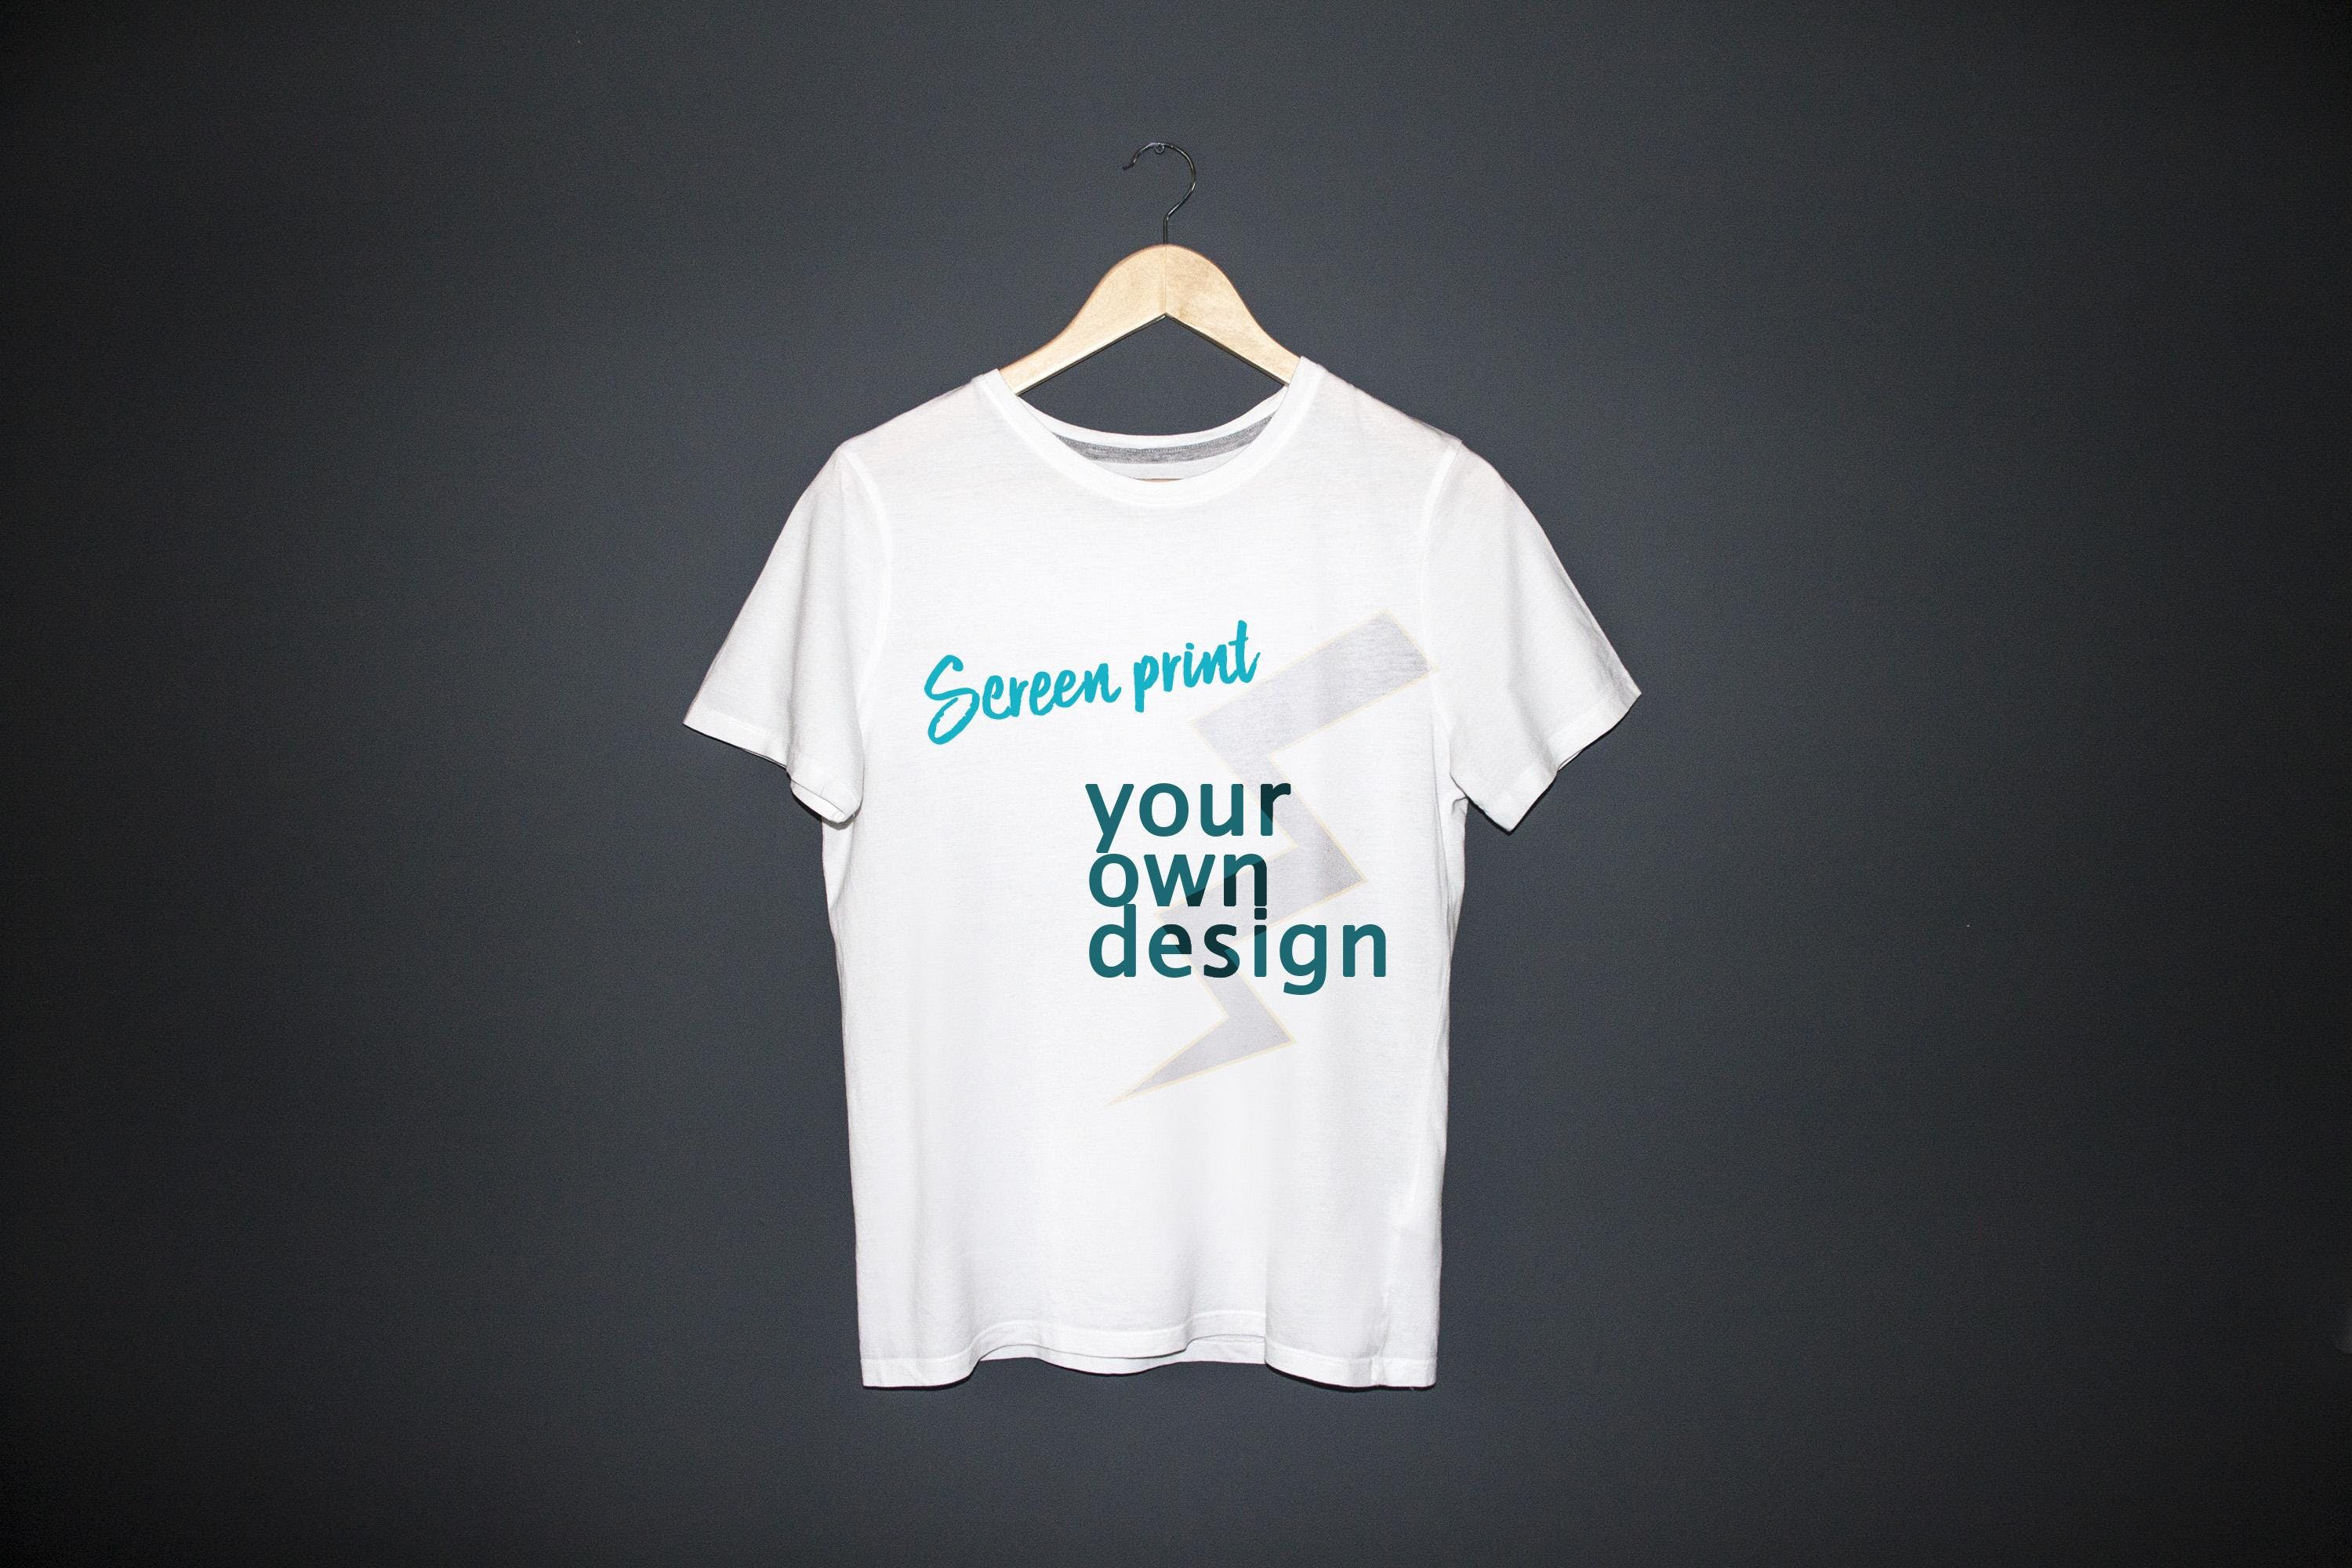 Summer Screen Printing One Day Course Print Your Own Custom T